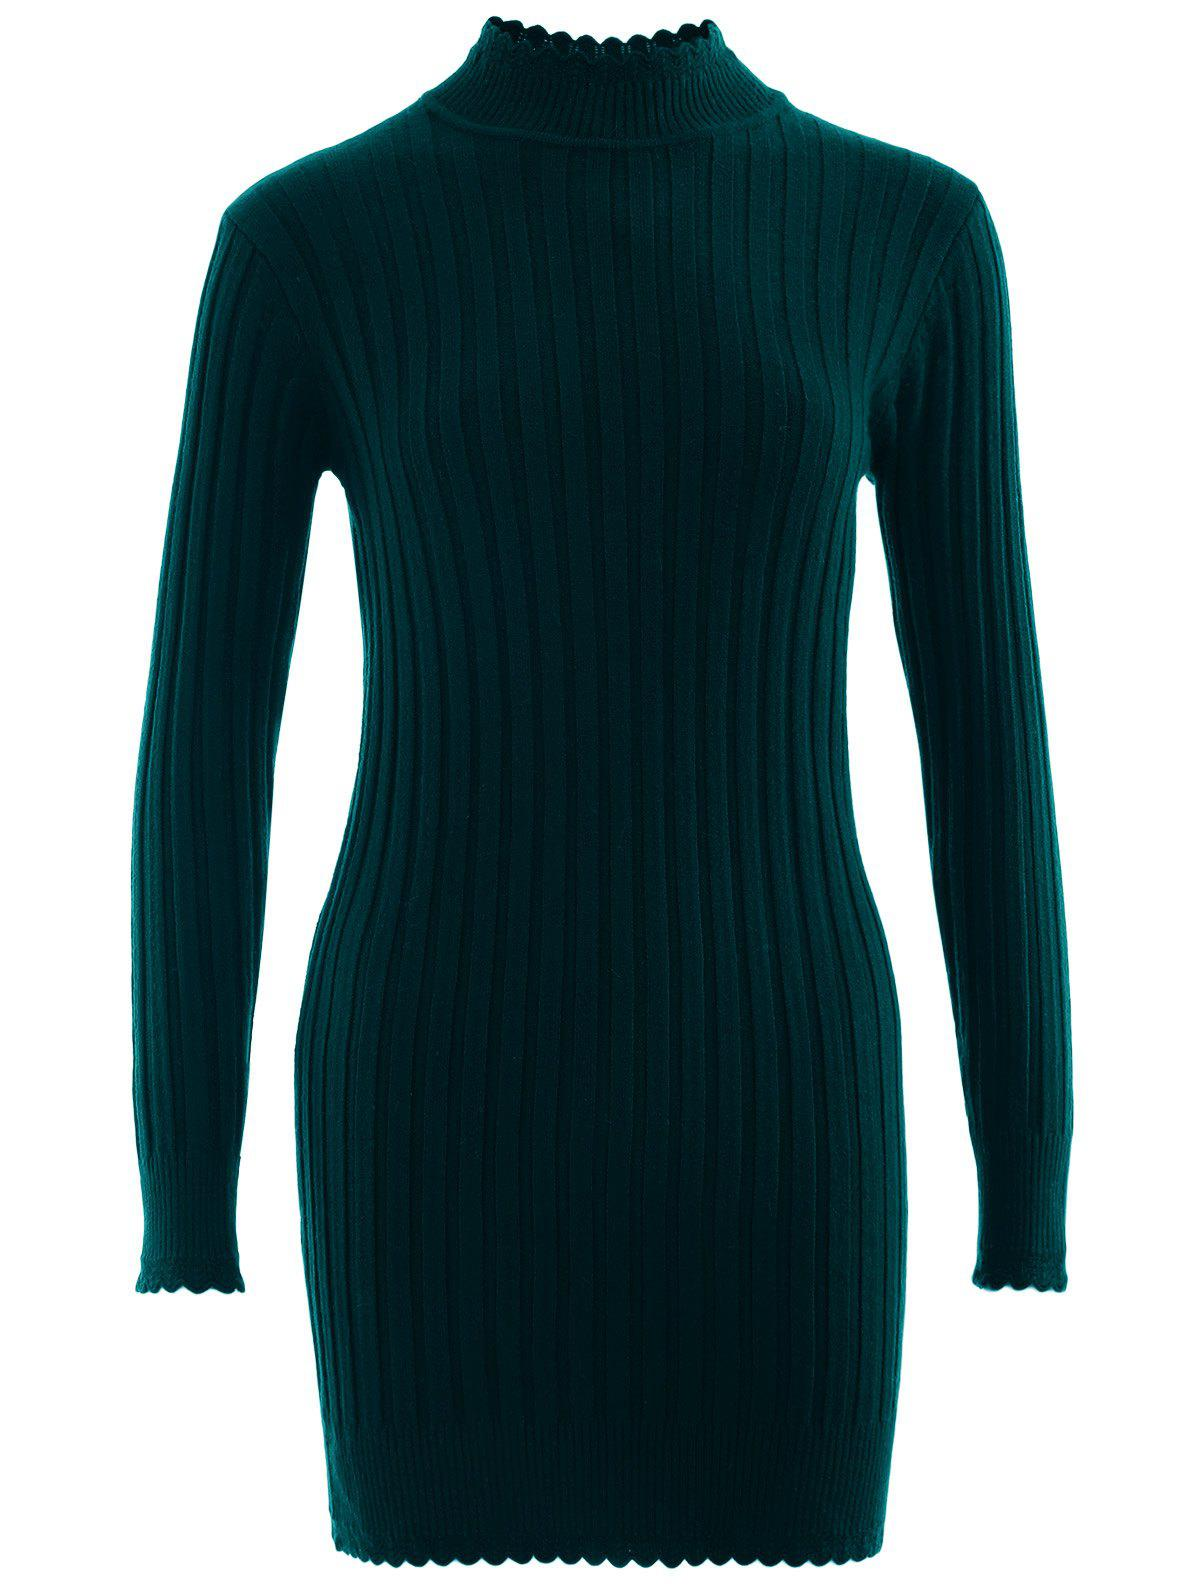 Scalloped High Neck Knitted Sweater - BLACKISH GREEN ONE SIZE